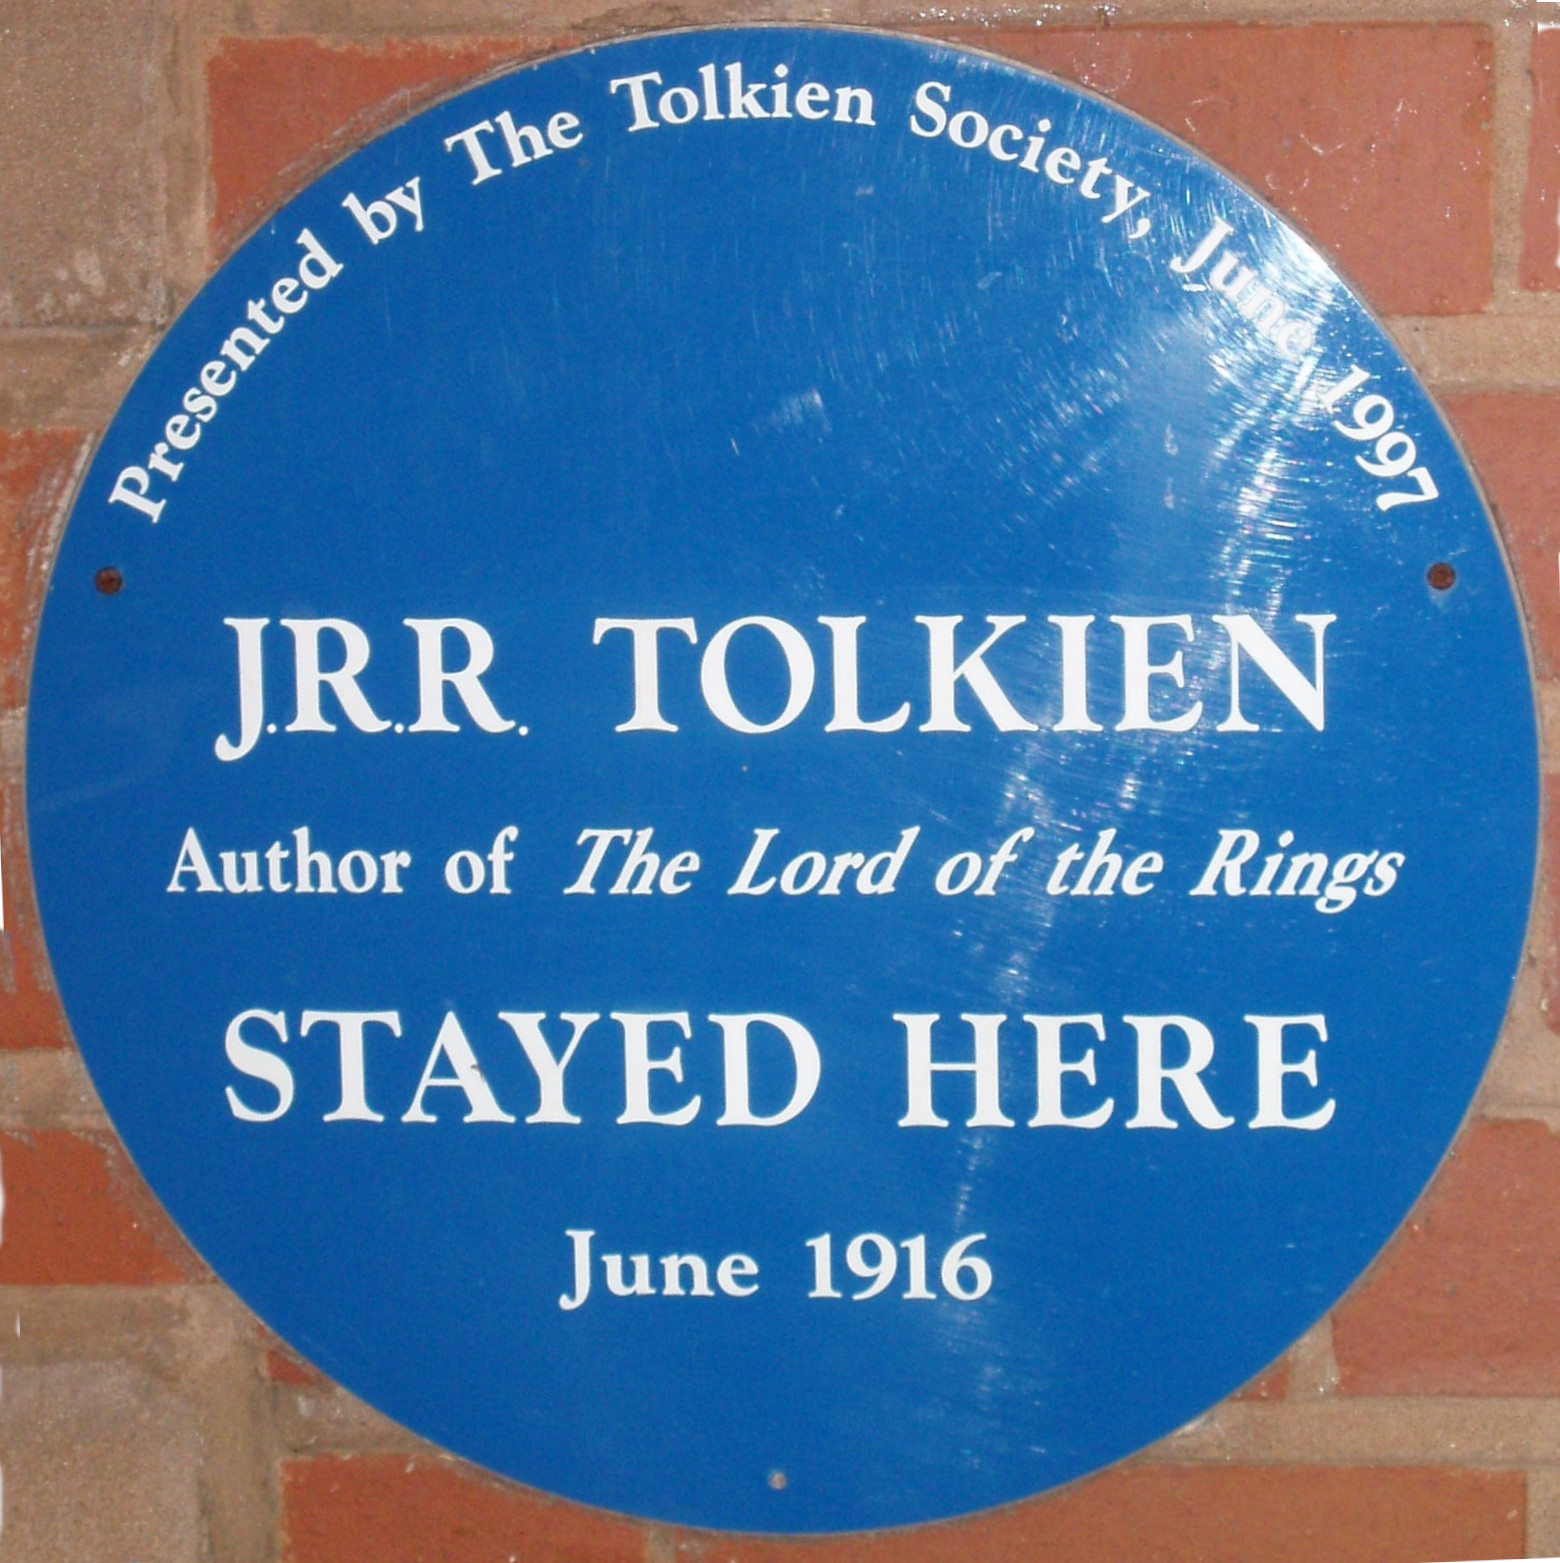 Blue plaque on the Plough and Harrow hotel, Birmingham, commemorating J. R. R. Tolkien's stay there in June 1916. Photographed in October 2005.